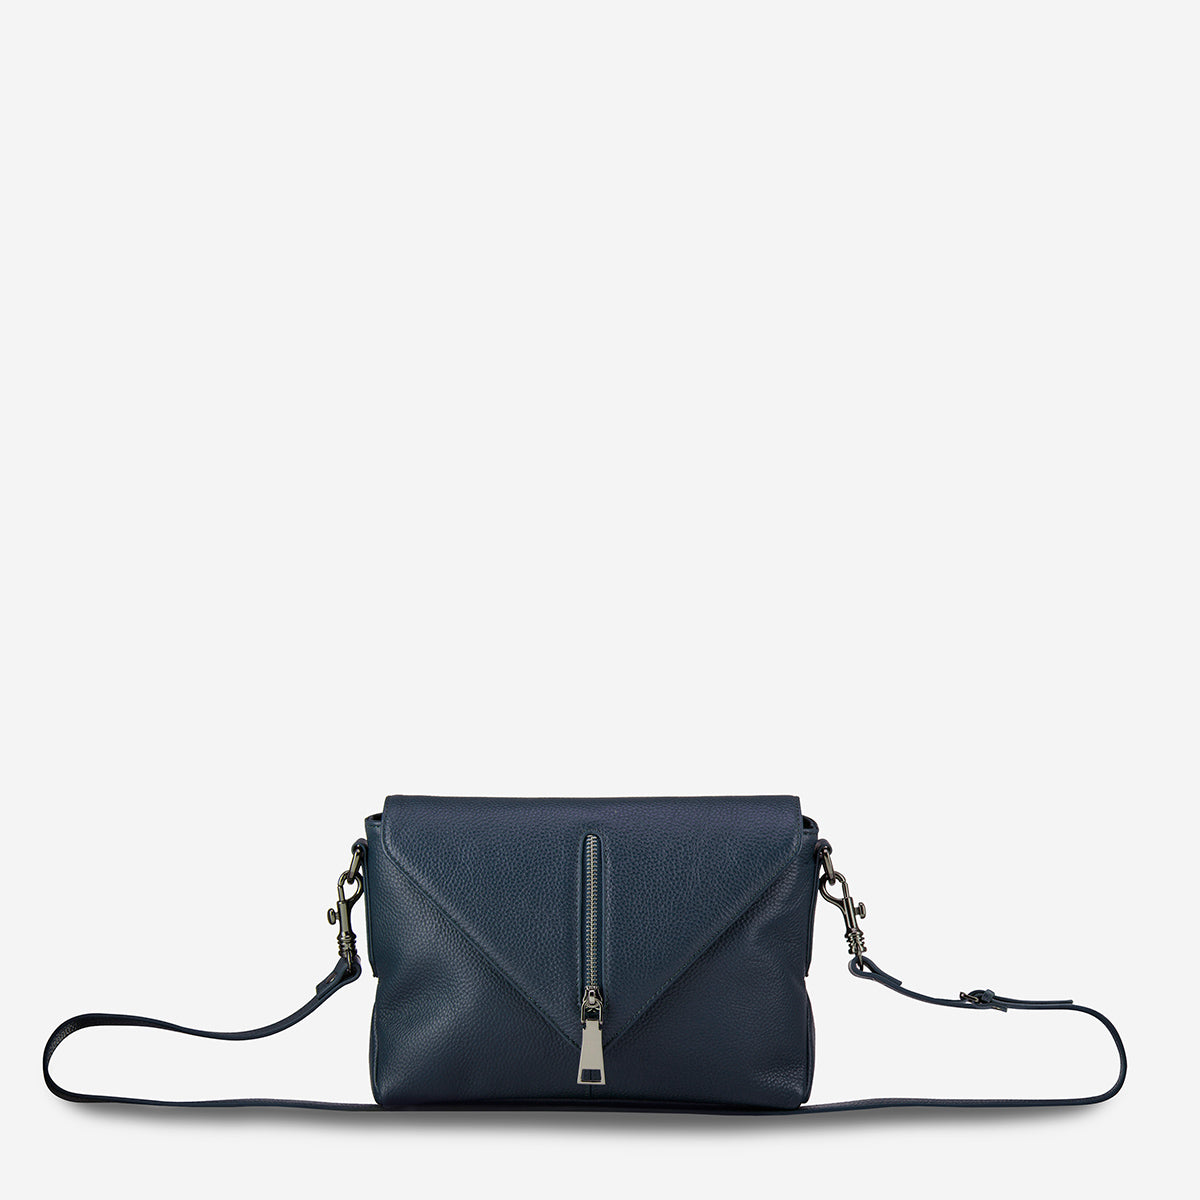 Status Anxiety Exile Women's Leather Crossbody Bag - Navy Blue